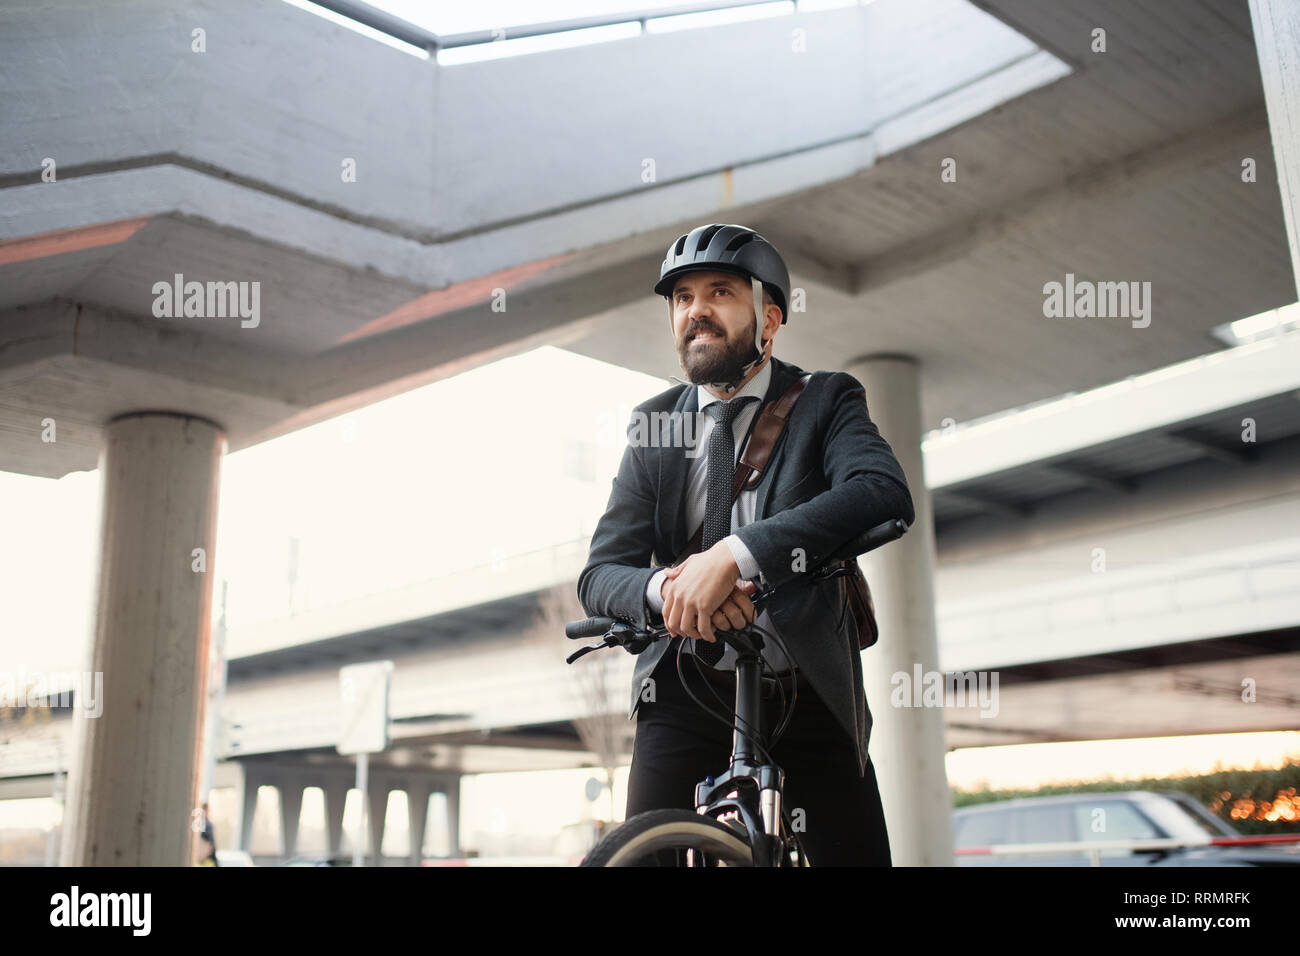 Hipster businessman commuter with electric bicycle traveling home from work in city. Copy space. Stock Photo